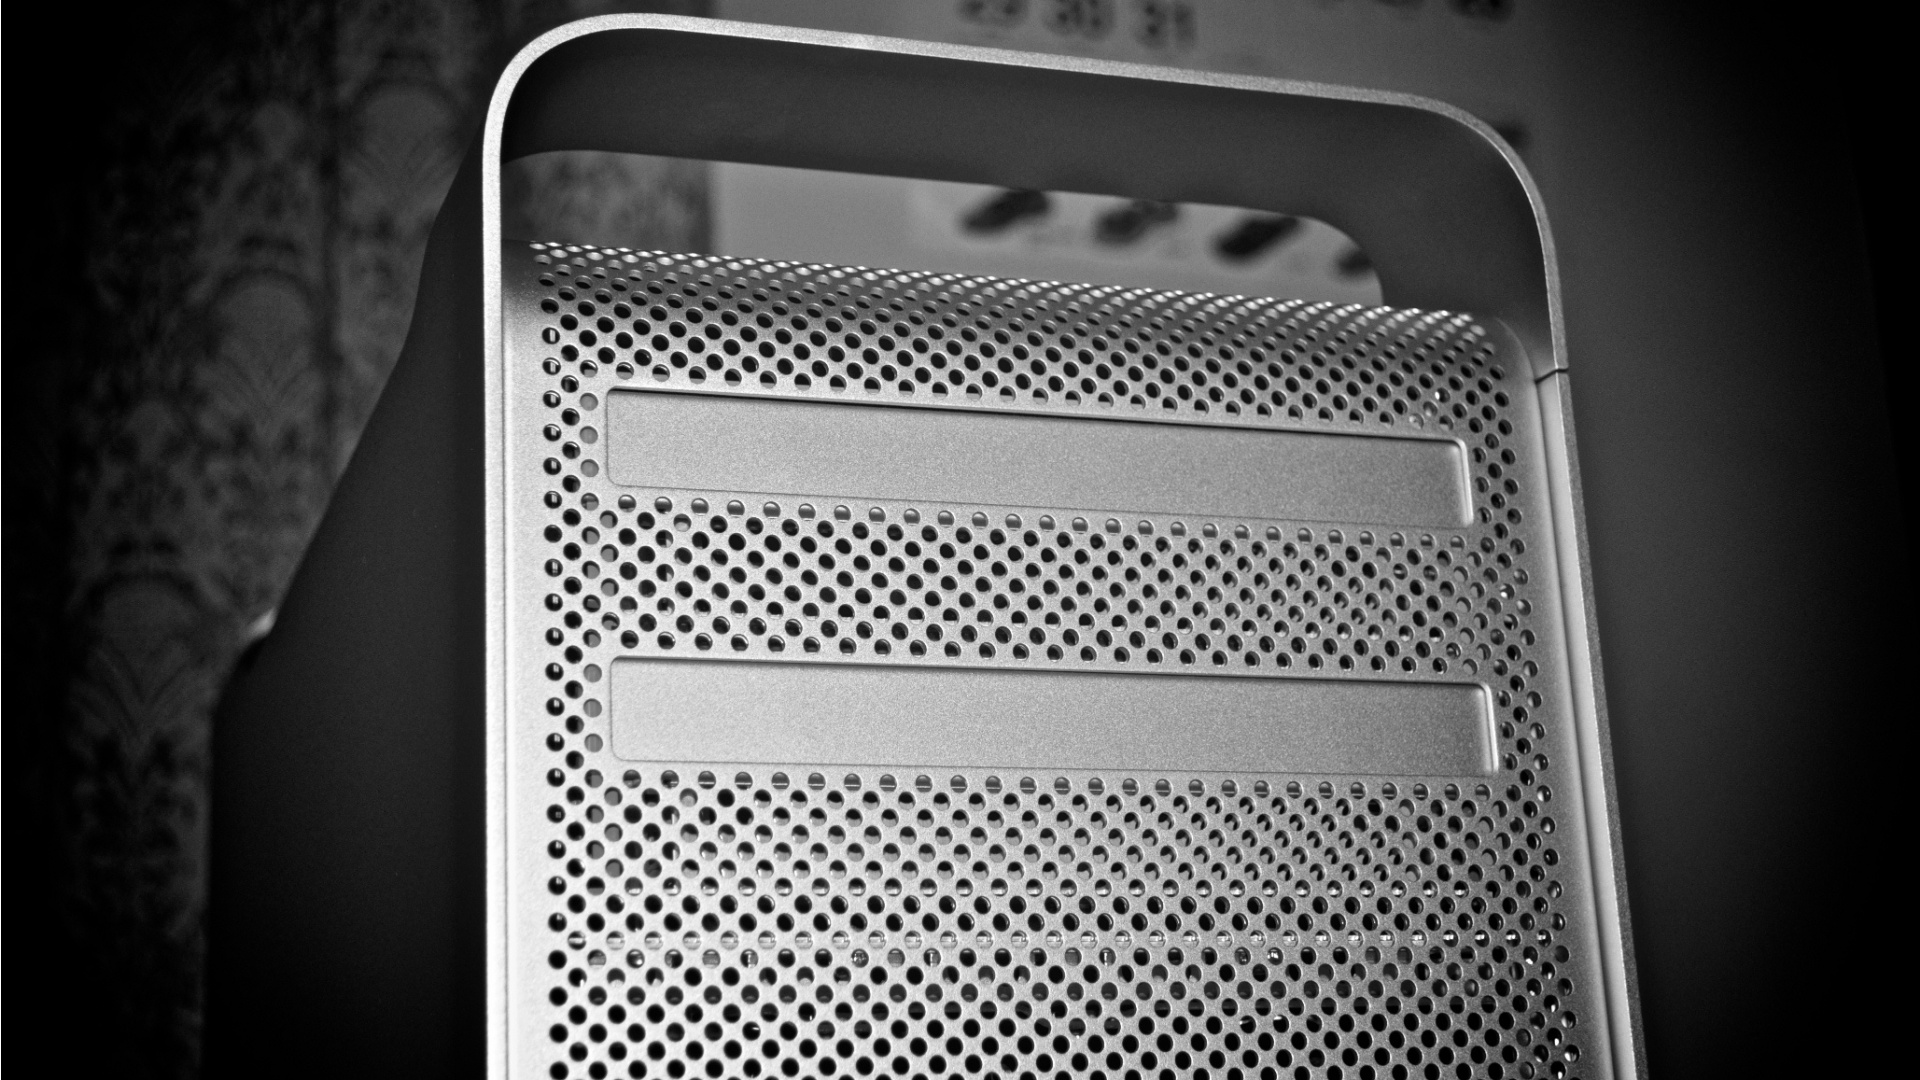 OS X Gaming Journaled: Farewell to Mac Pro